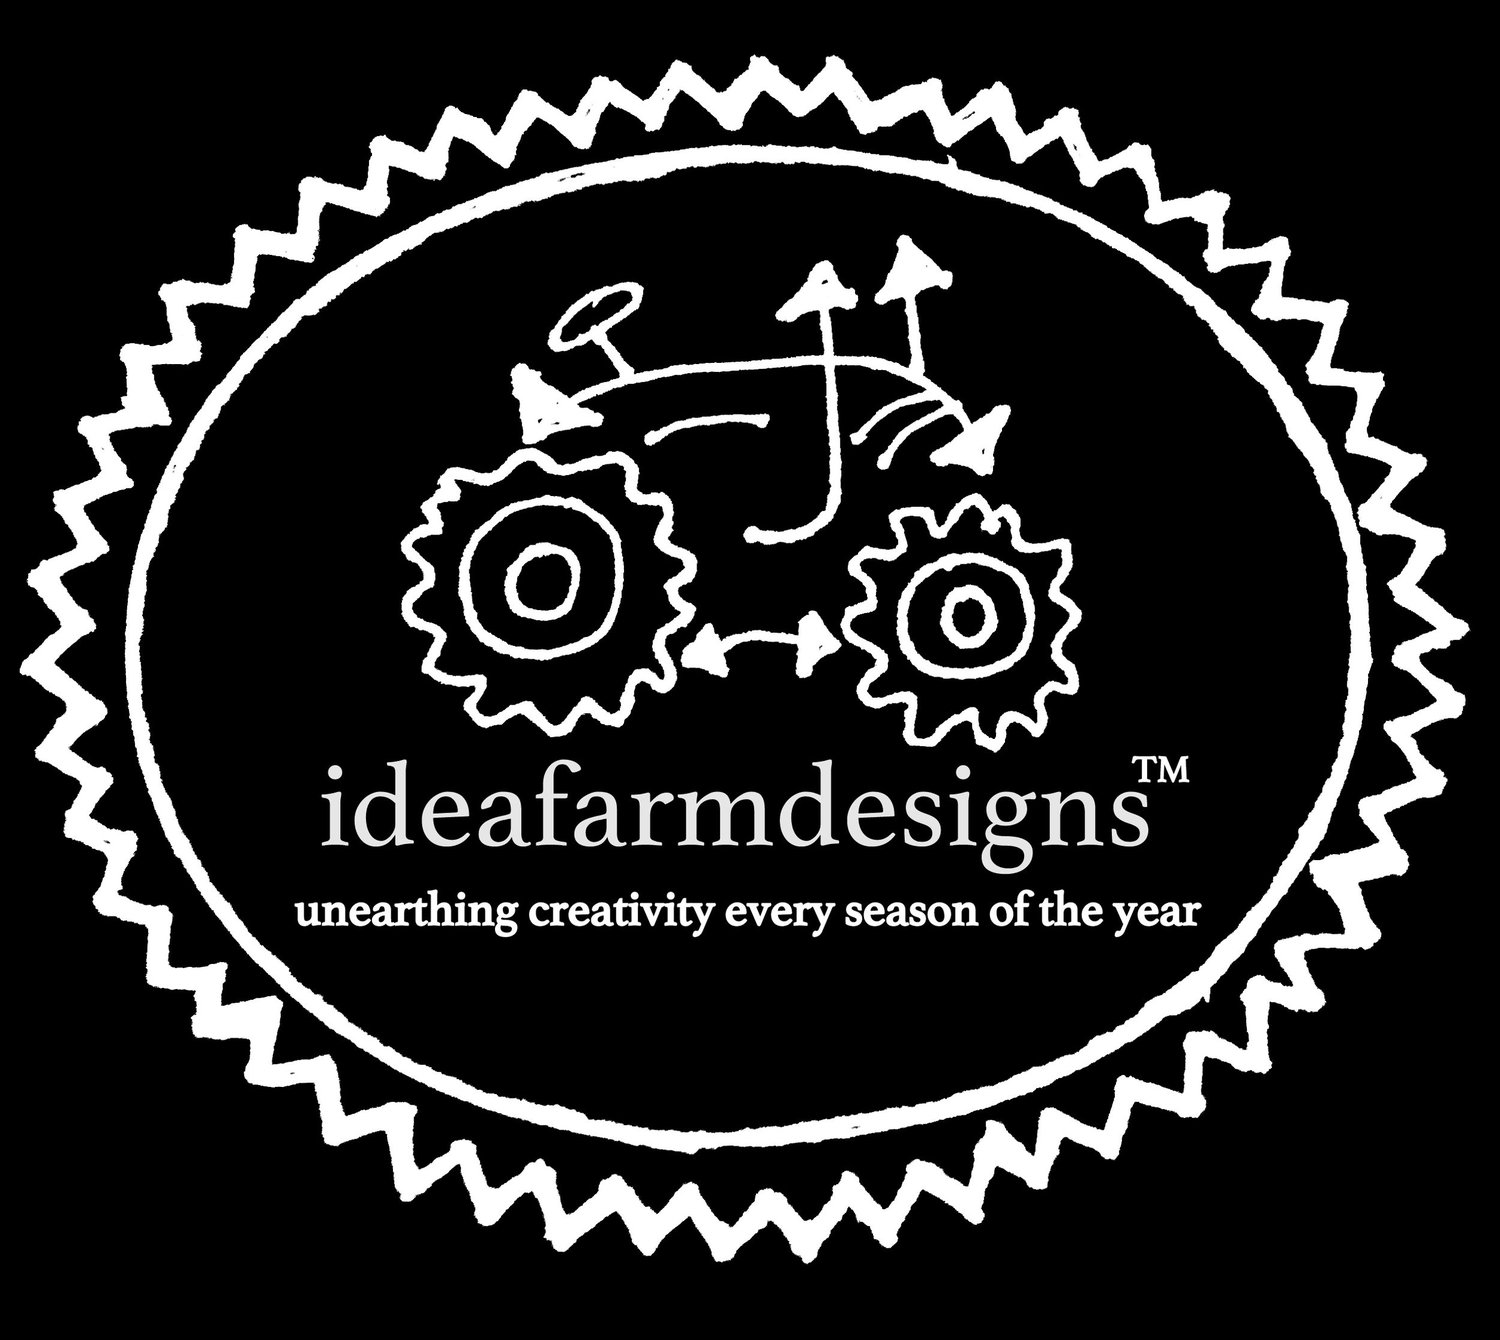 ideafarmdesigns